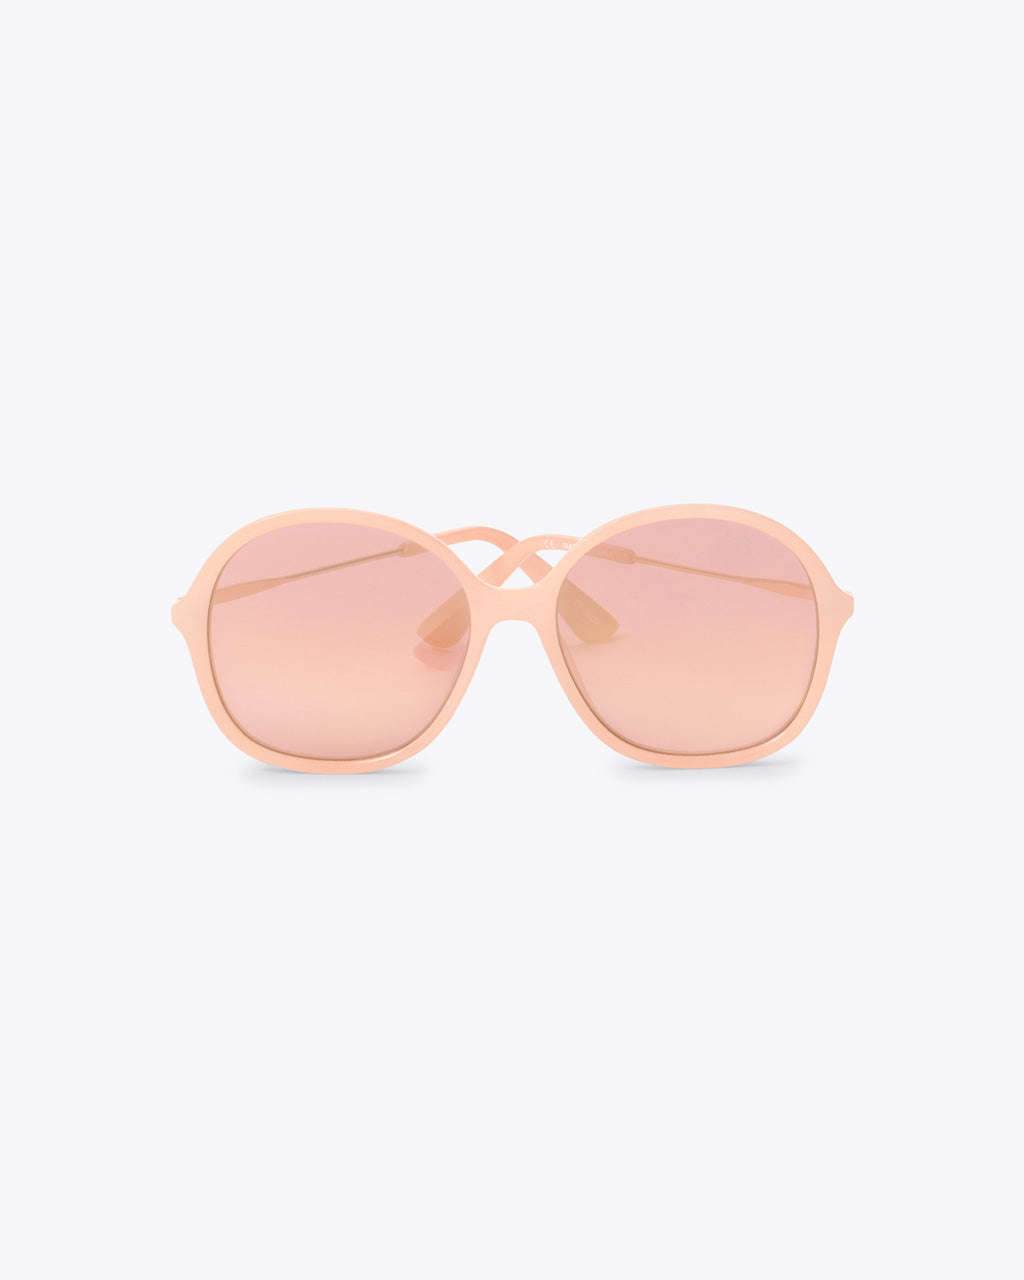 oversized sunglasses with pink lenses